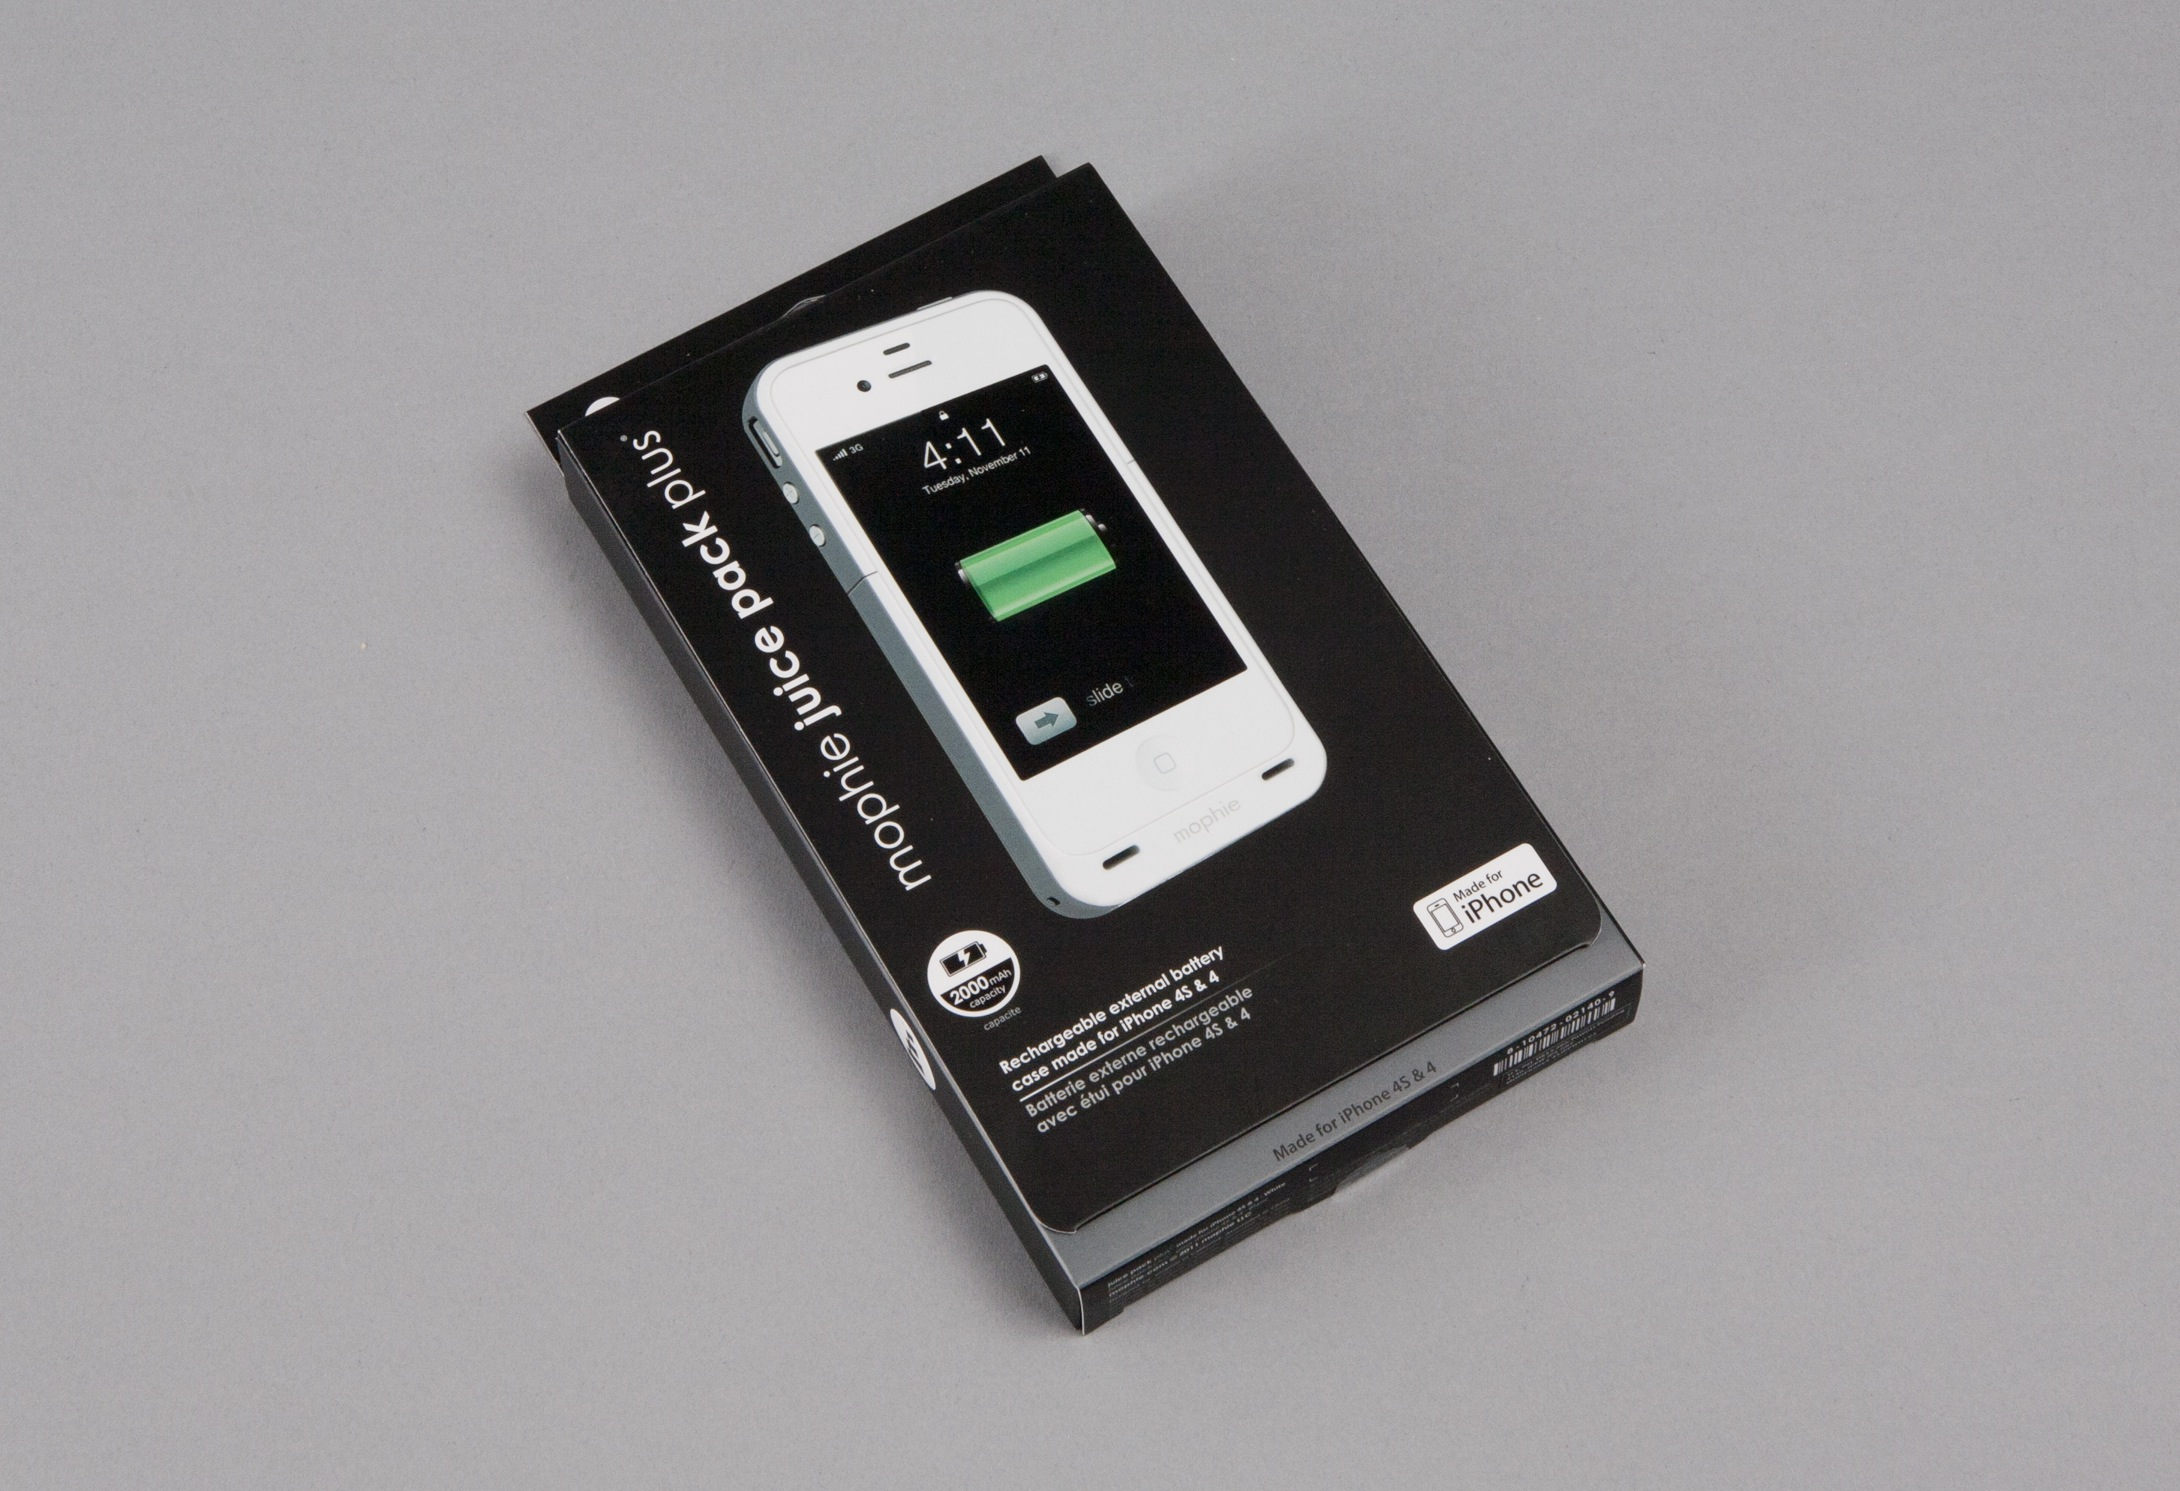 mophie, juice pack, competition, rechargable, battery, Test Pressing